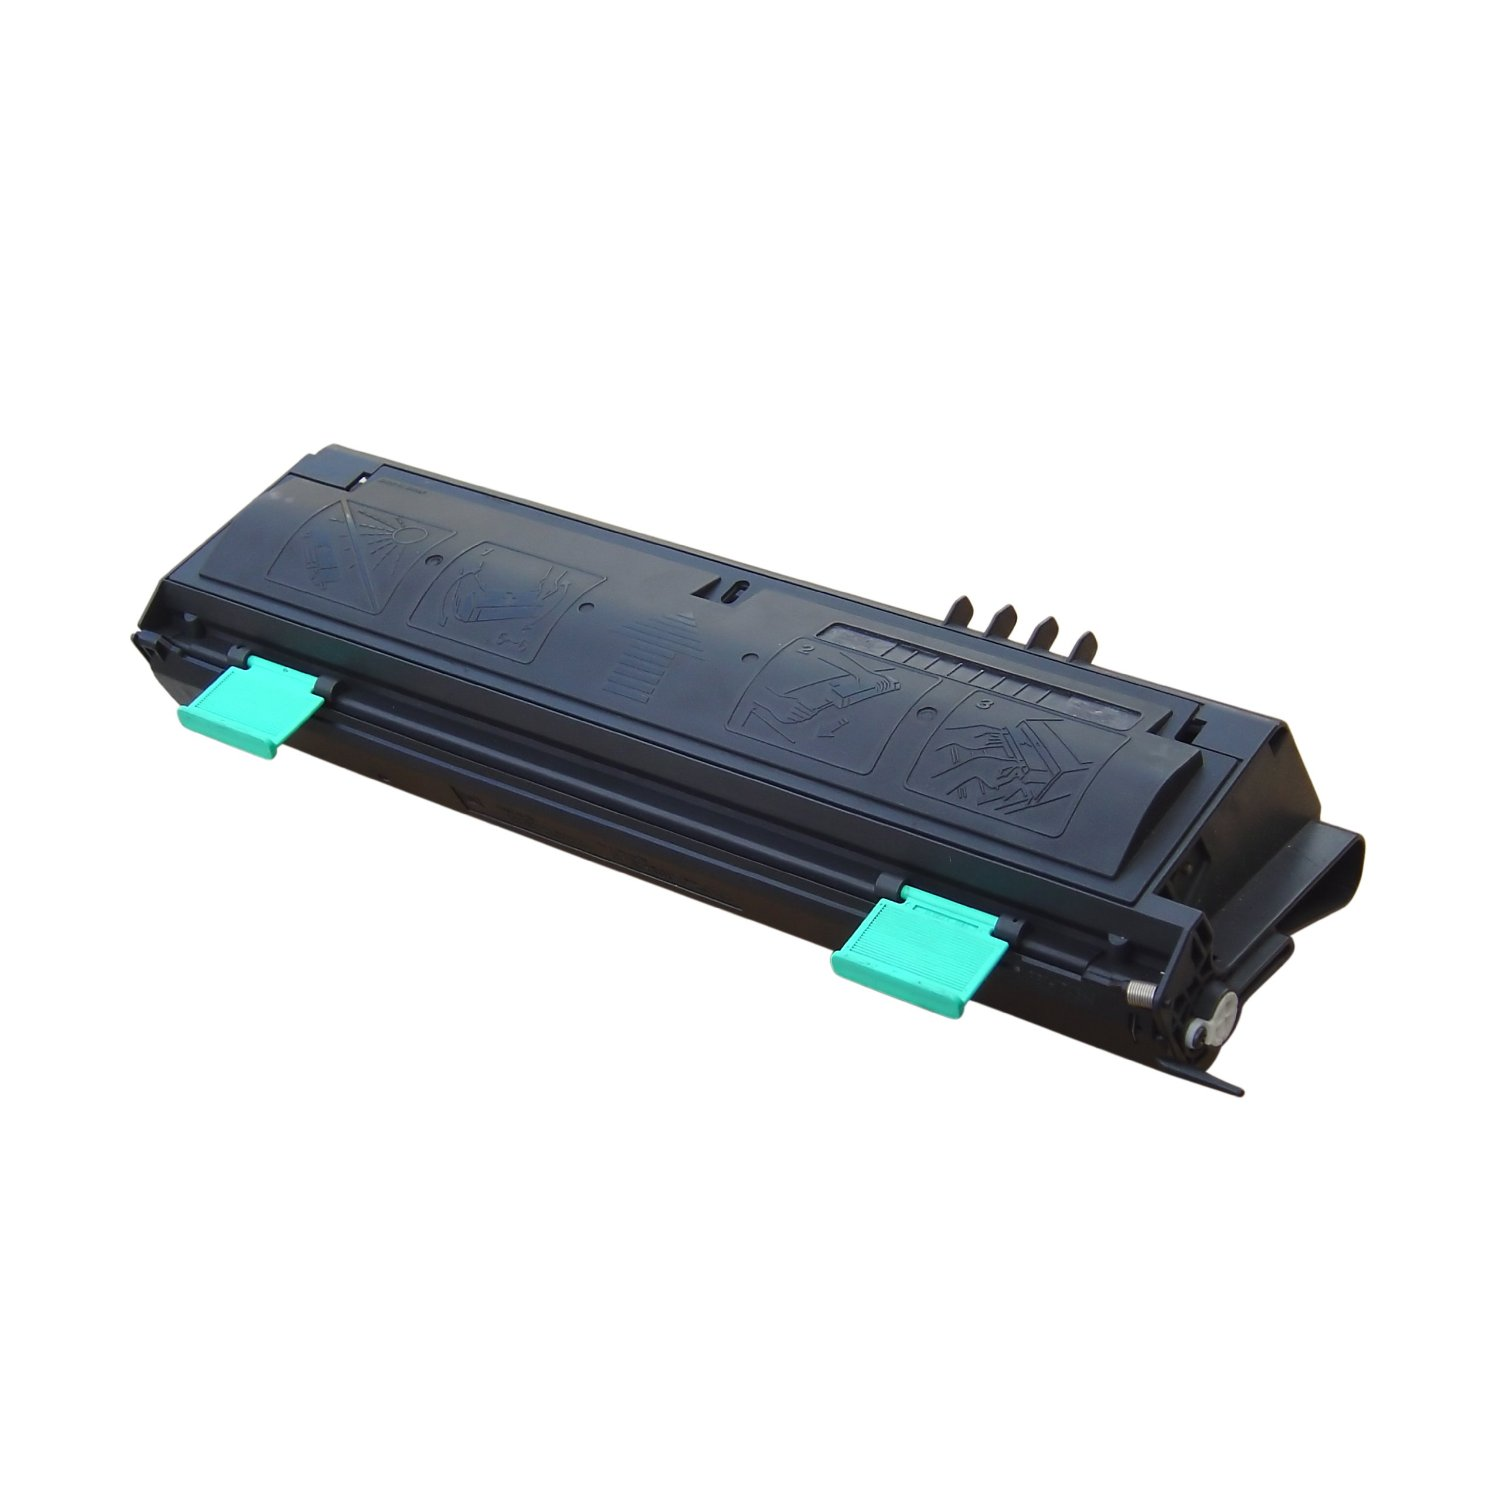 HP C3900A: HP C3900A Compatible Remanufactured Black Toner Cartridge